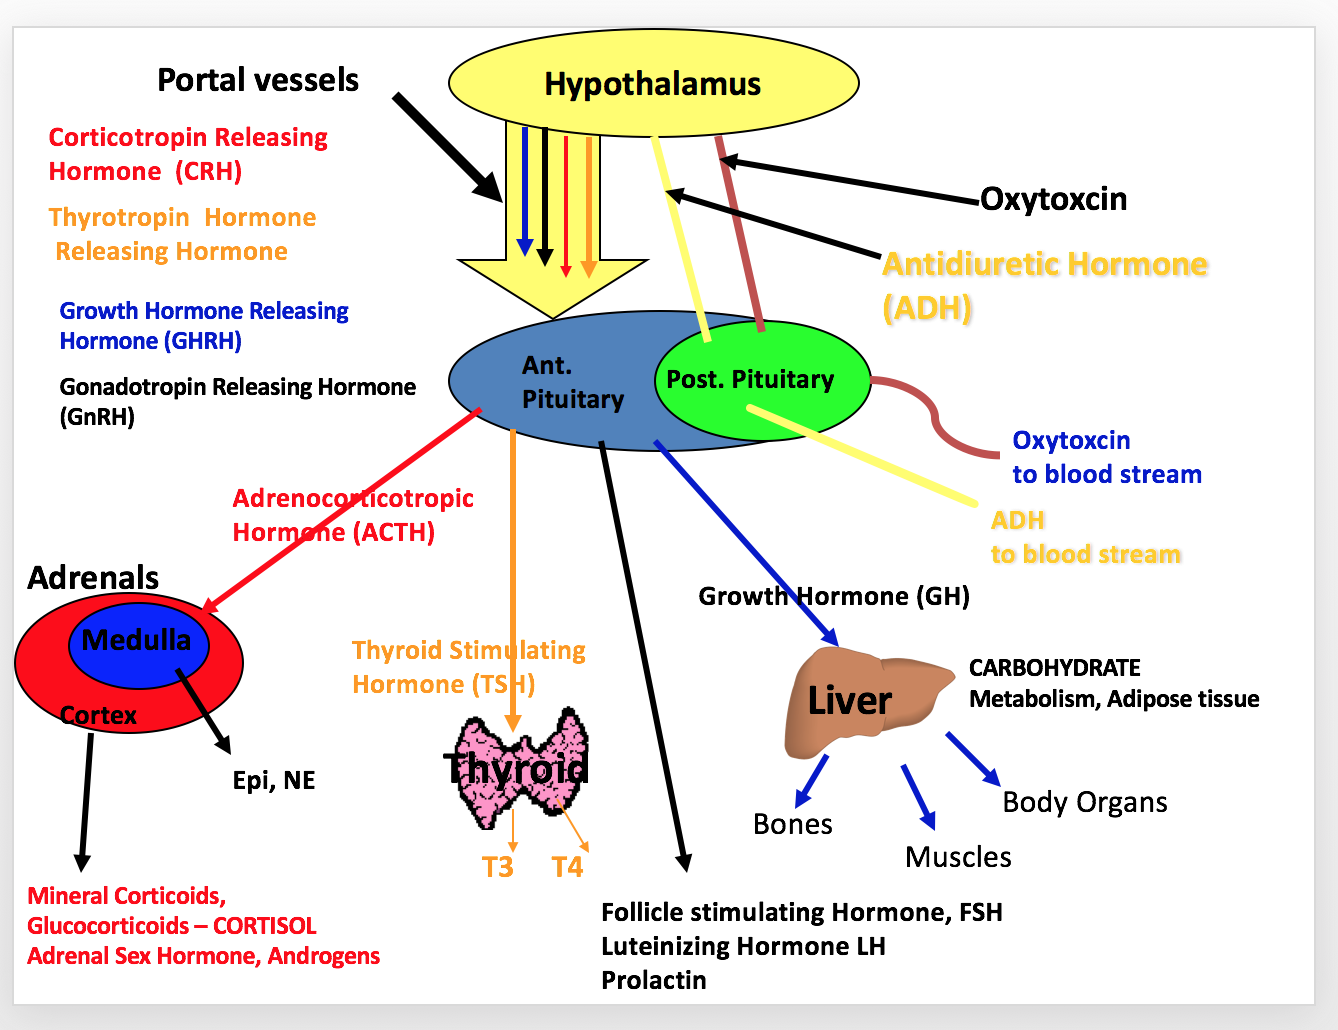 Endocrine System With Images